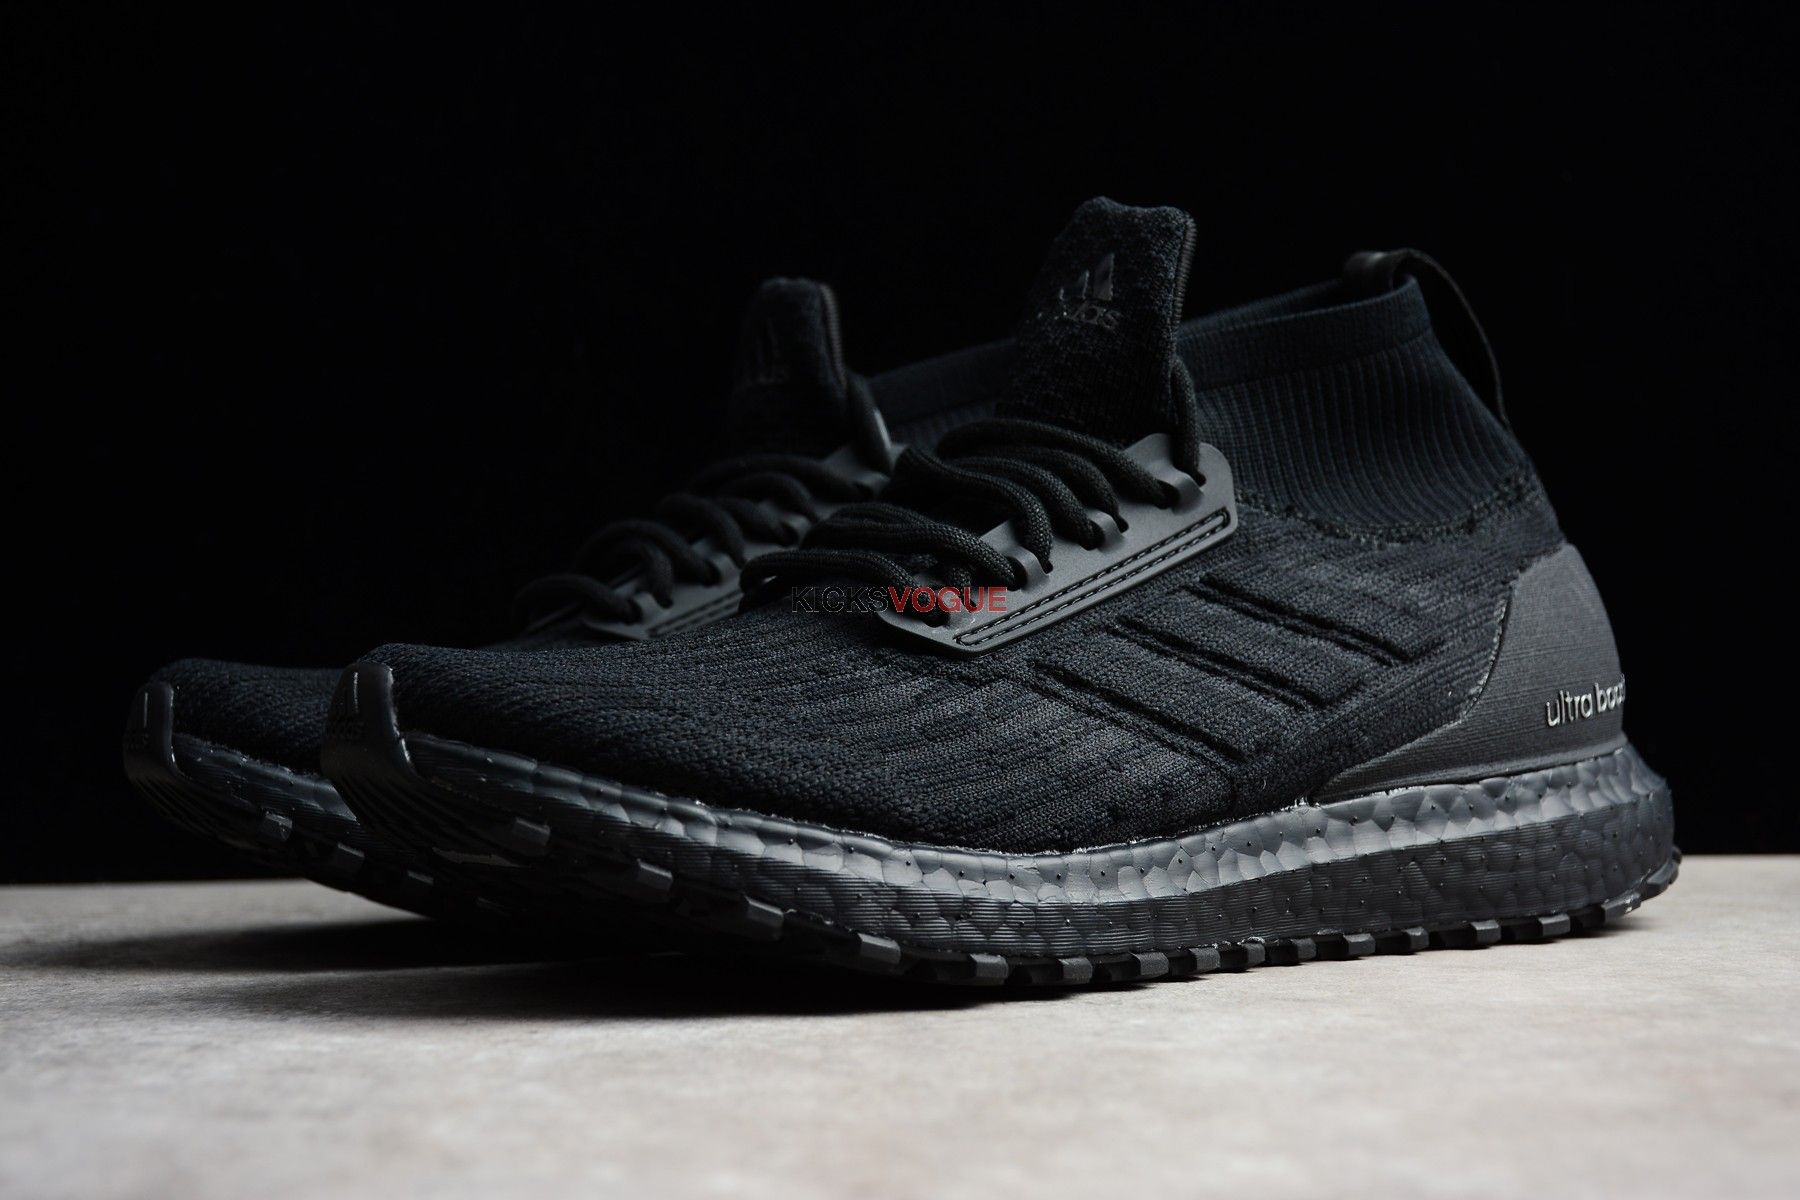 d155c97bb95b4 Adidas Ultra Boost Mid ATR Oreo Ltd